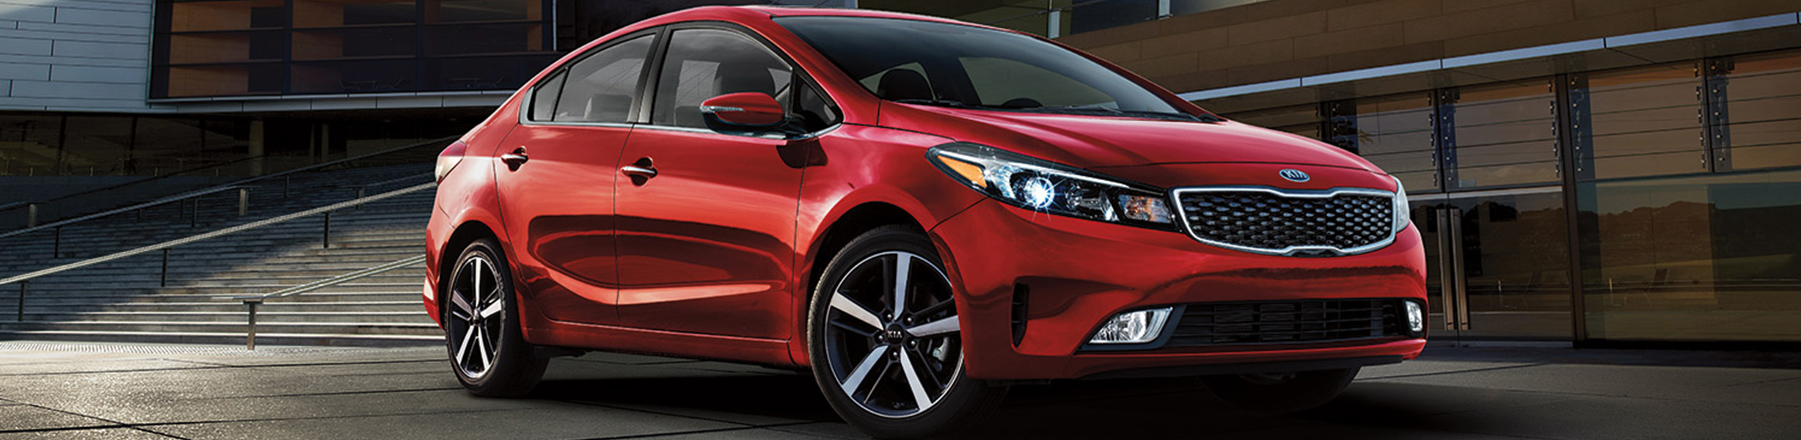 Kia Certified Pre-Owned Vehicles in New Brunswick